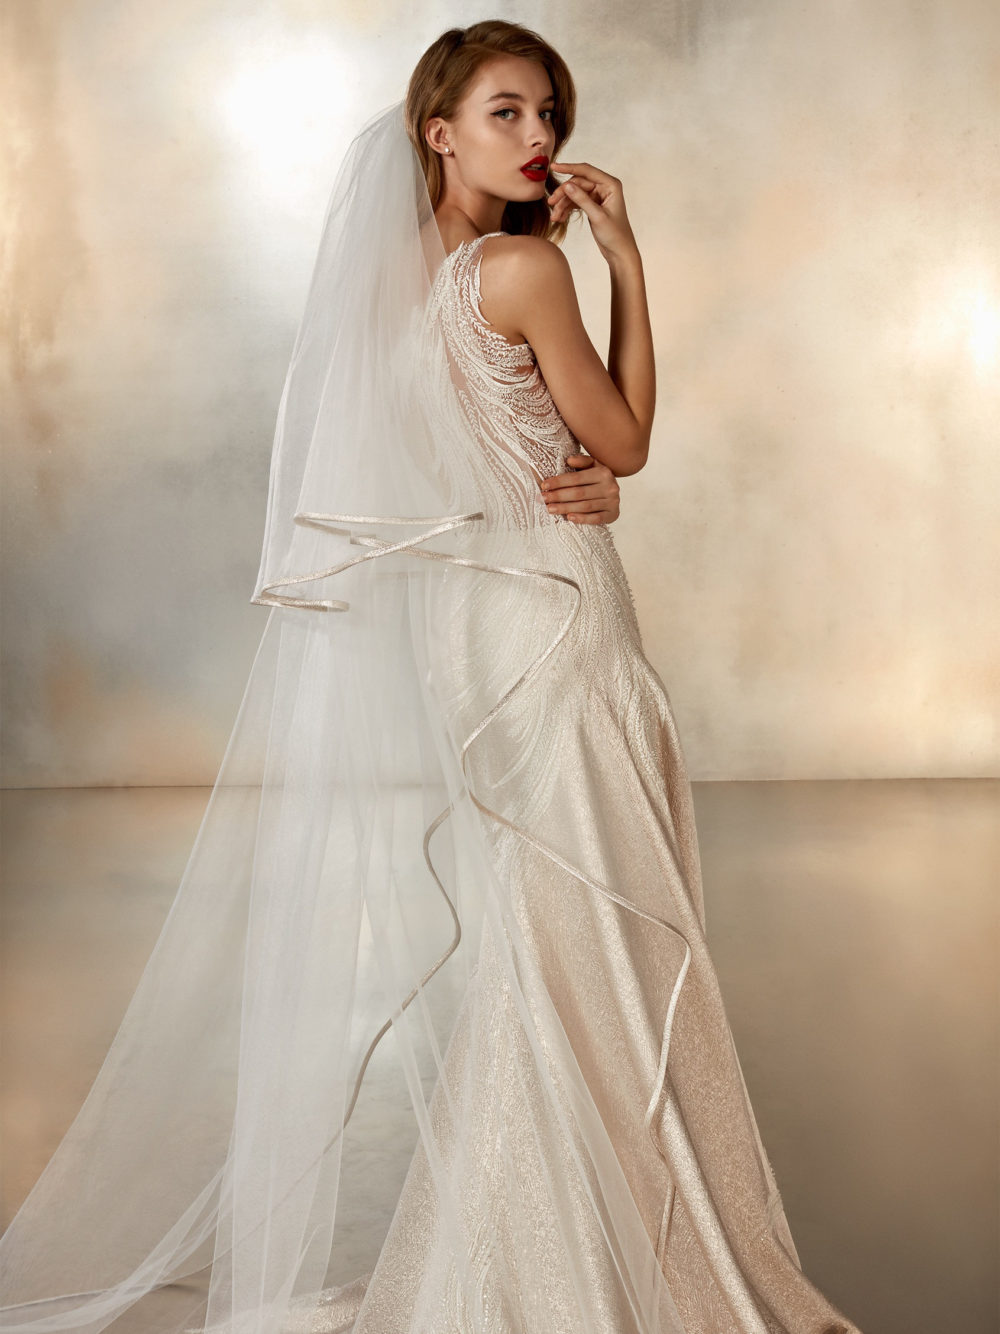 Pronovias Atelier Collection Moon Dance Wedding Gown Dress 2020 Right